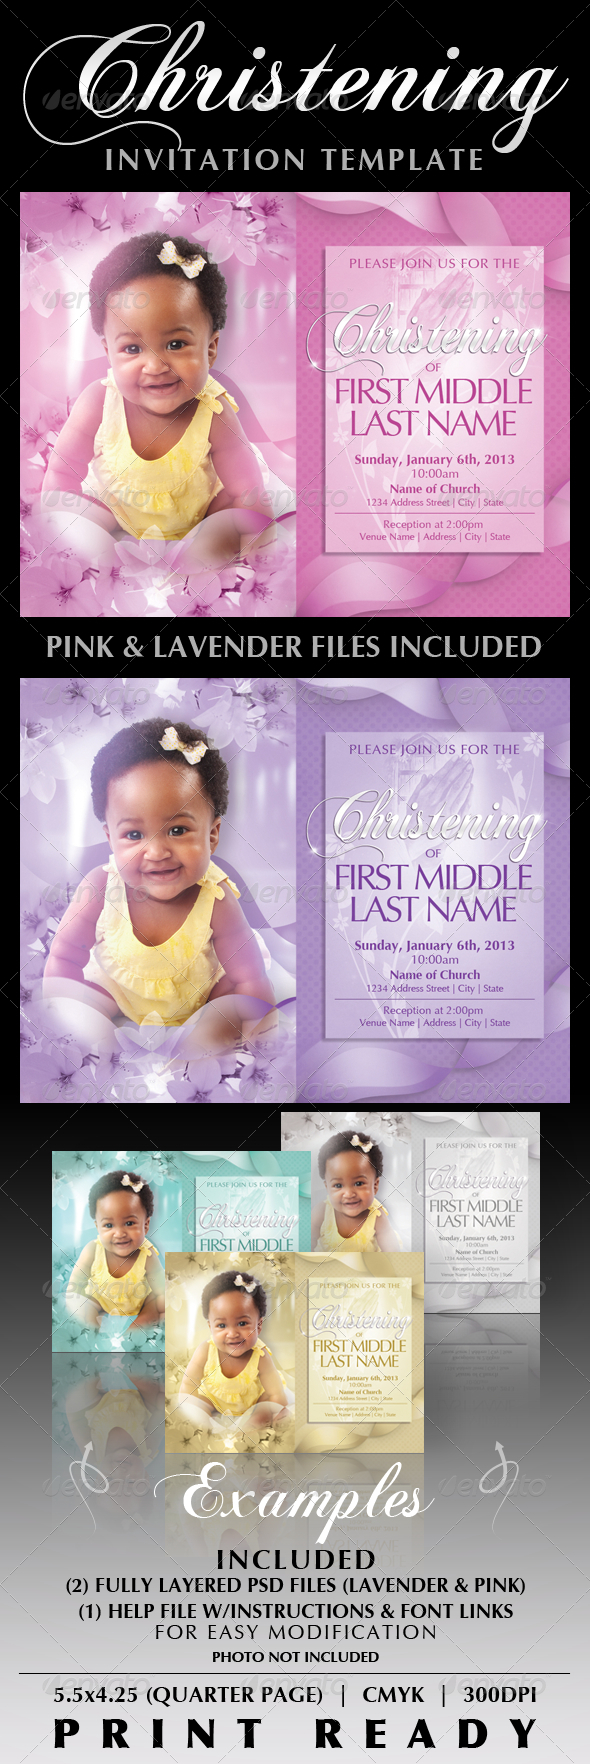 Baby Christening Invitation Templates - Invitations Cards & Invites